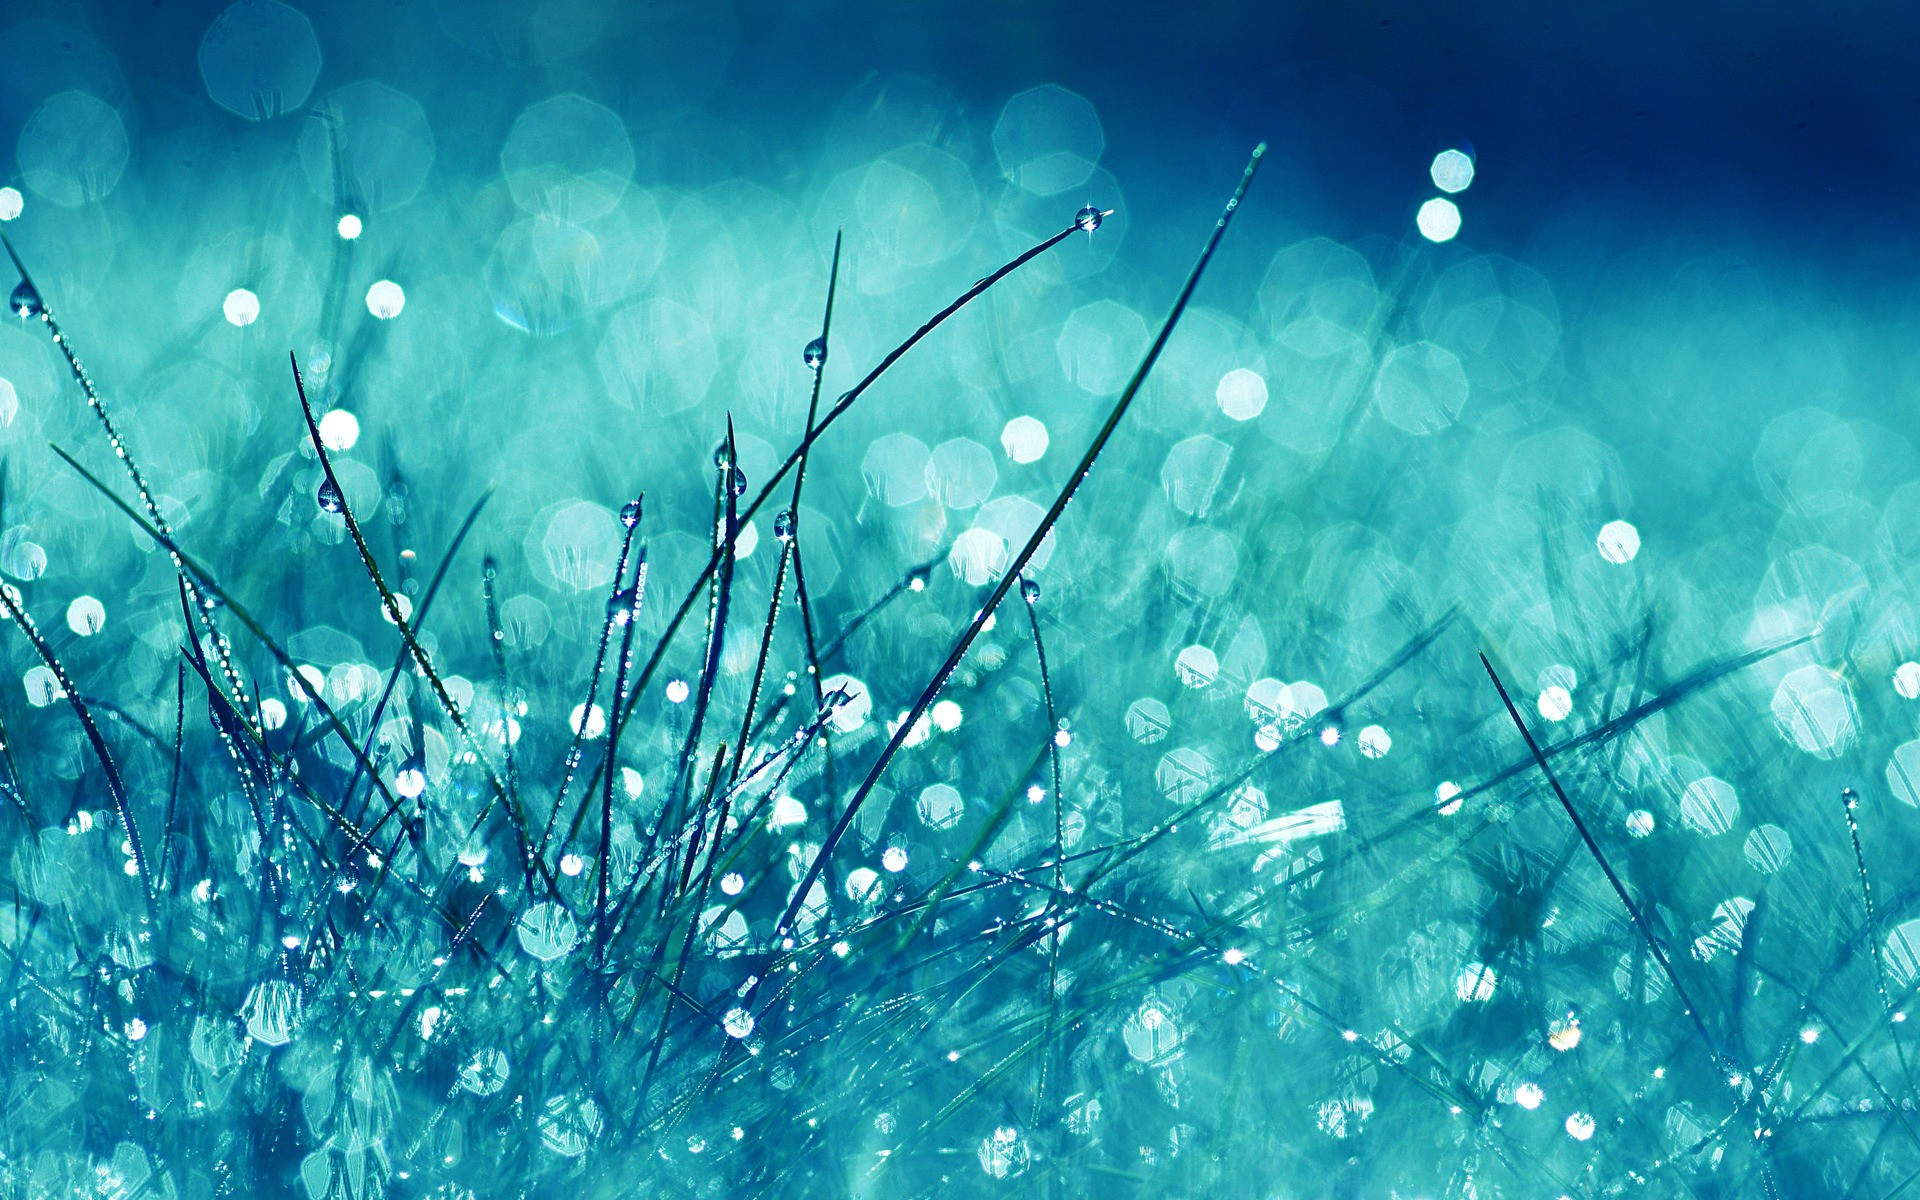 Dew Drops on the Grass Wallpaper HD 417.21 Kb